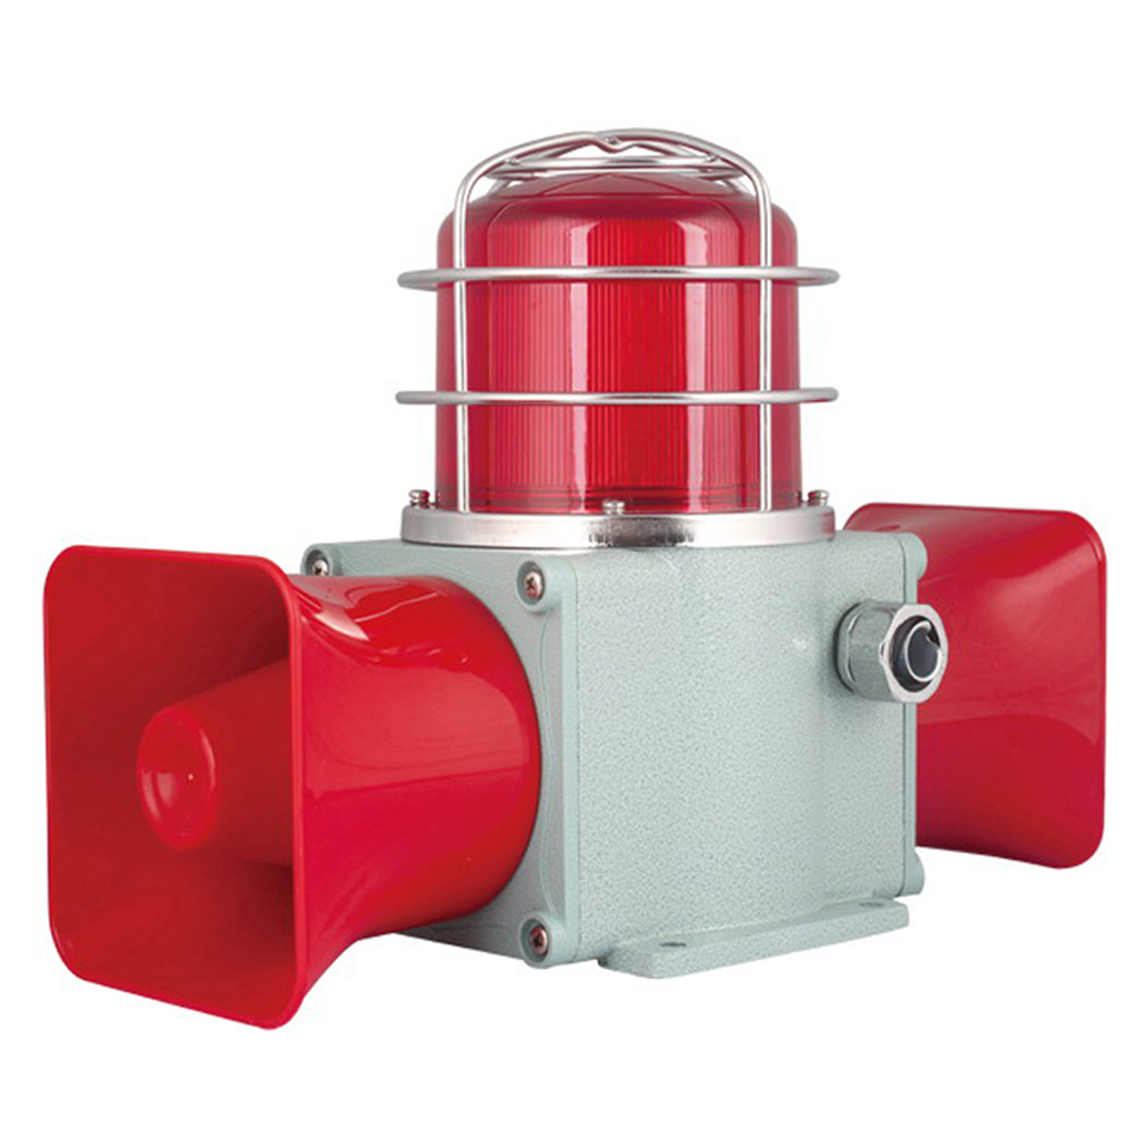 HDSLD-135 Heavy Duty Sounder With Warning Beacon Double Horns